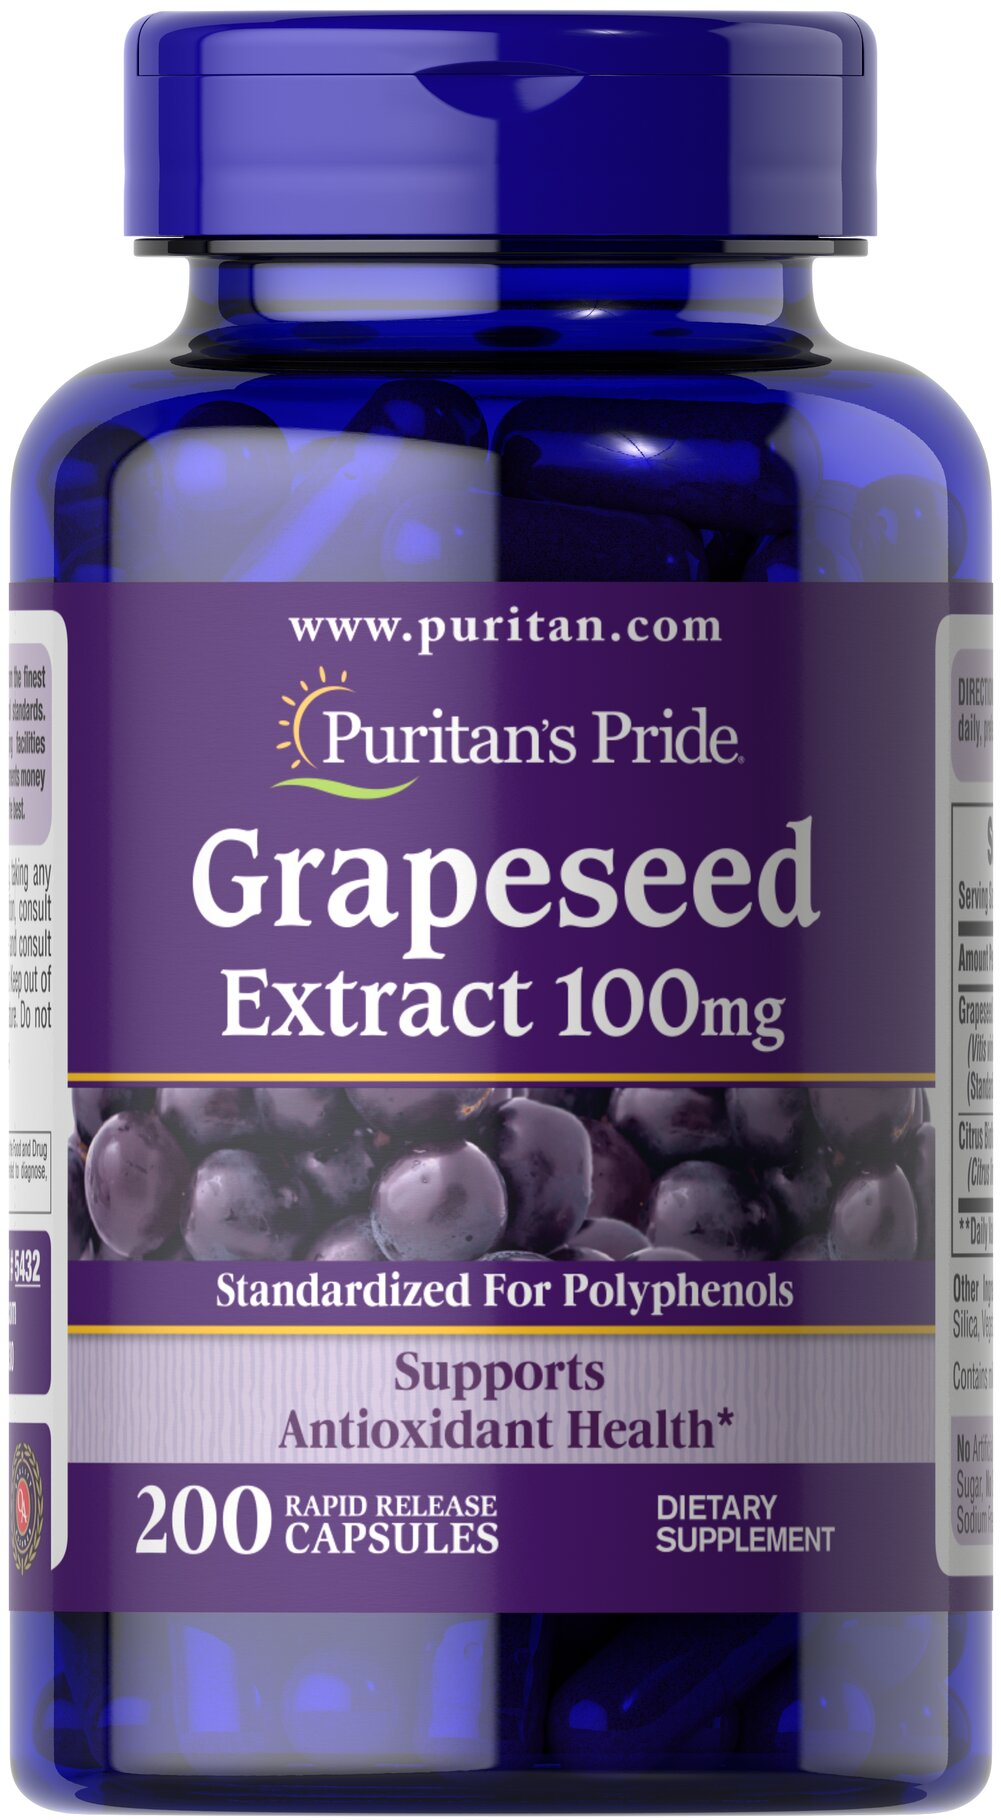 Grapeseed Extract 100 mg <p><strong>Grapeseed Extract</strong> helps maintain antioxidant health.** It contains oligomeric proanthocyanidins (OPCs), which are naturally occurring bioflavonoids. Free of yeast, wheat, sugar, preservatives, soy,  gluten, fish, artificial color, artificial flavor and sodium (less than 5 mg per serving). Standardized to contain 50% Polyphenols. Adults can take one capsule one or two times daily.</p> 200 Capsules 100 mg $34.99